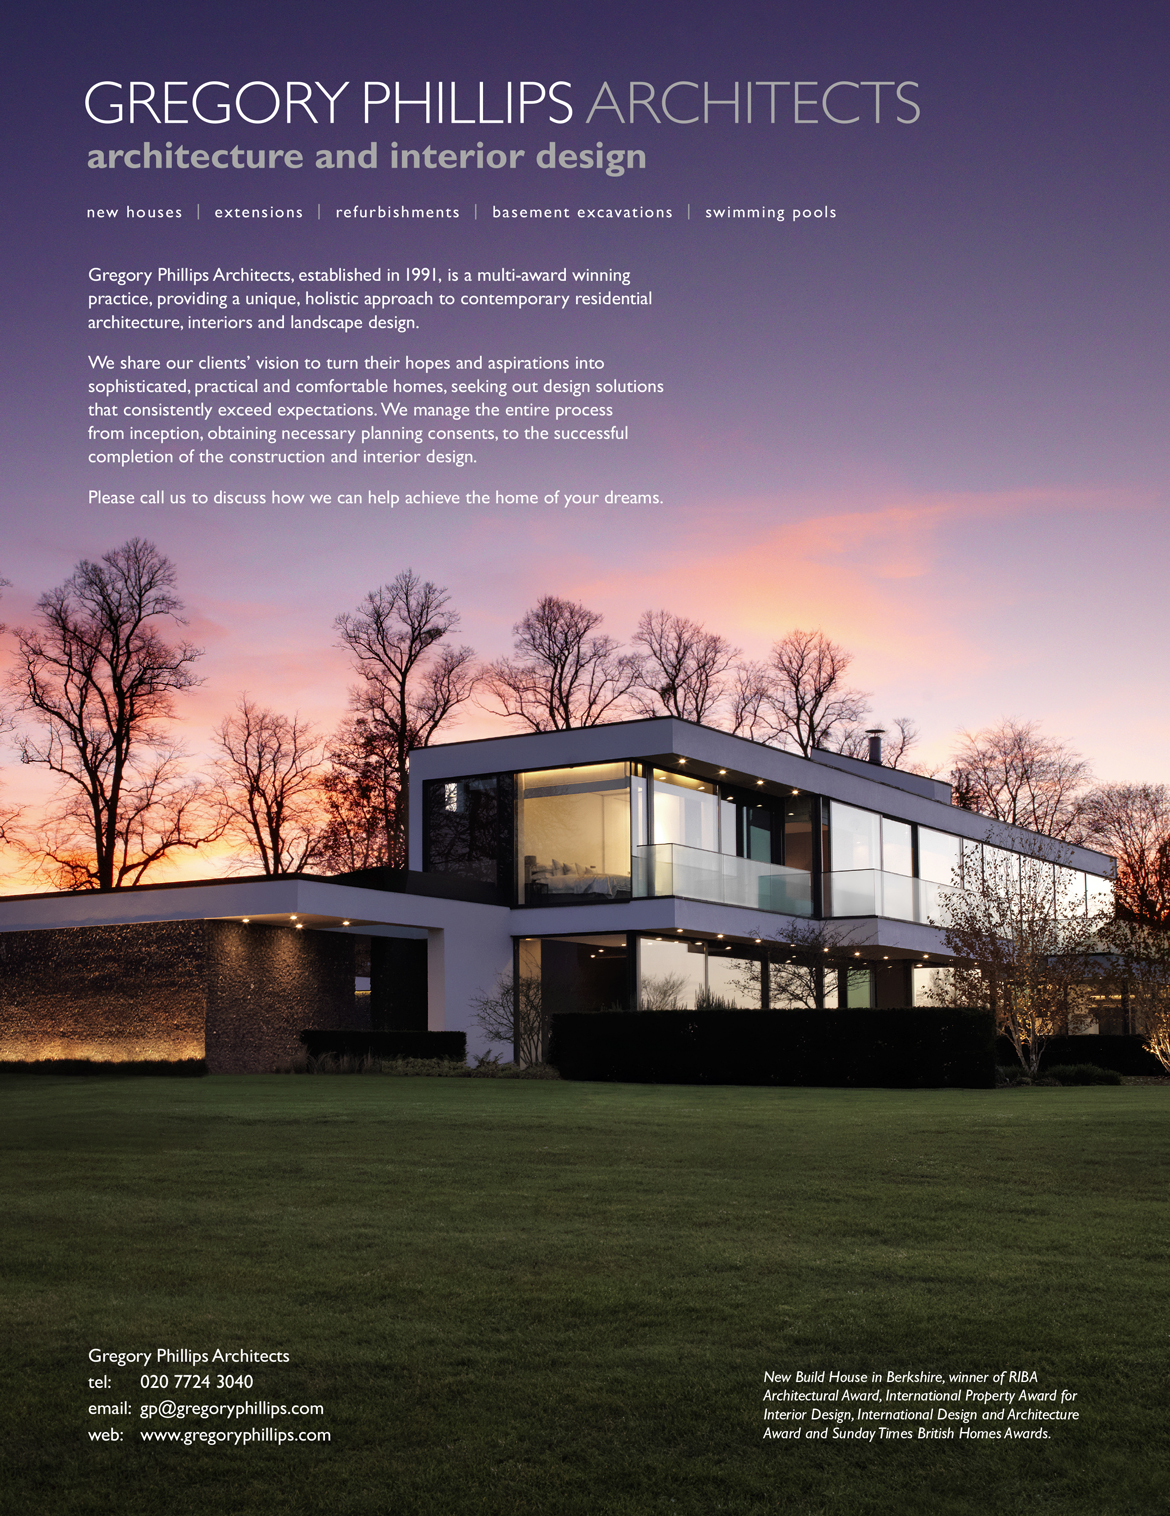 Gregory Phillips Architects Press Ads